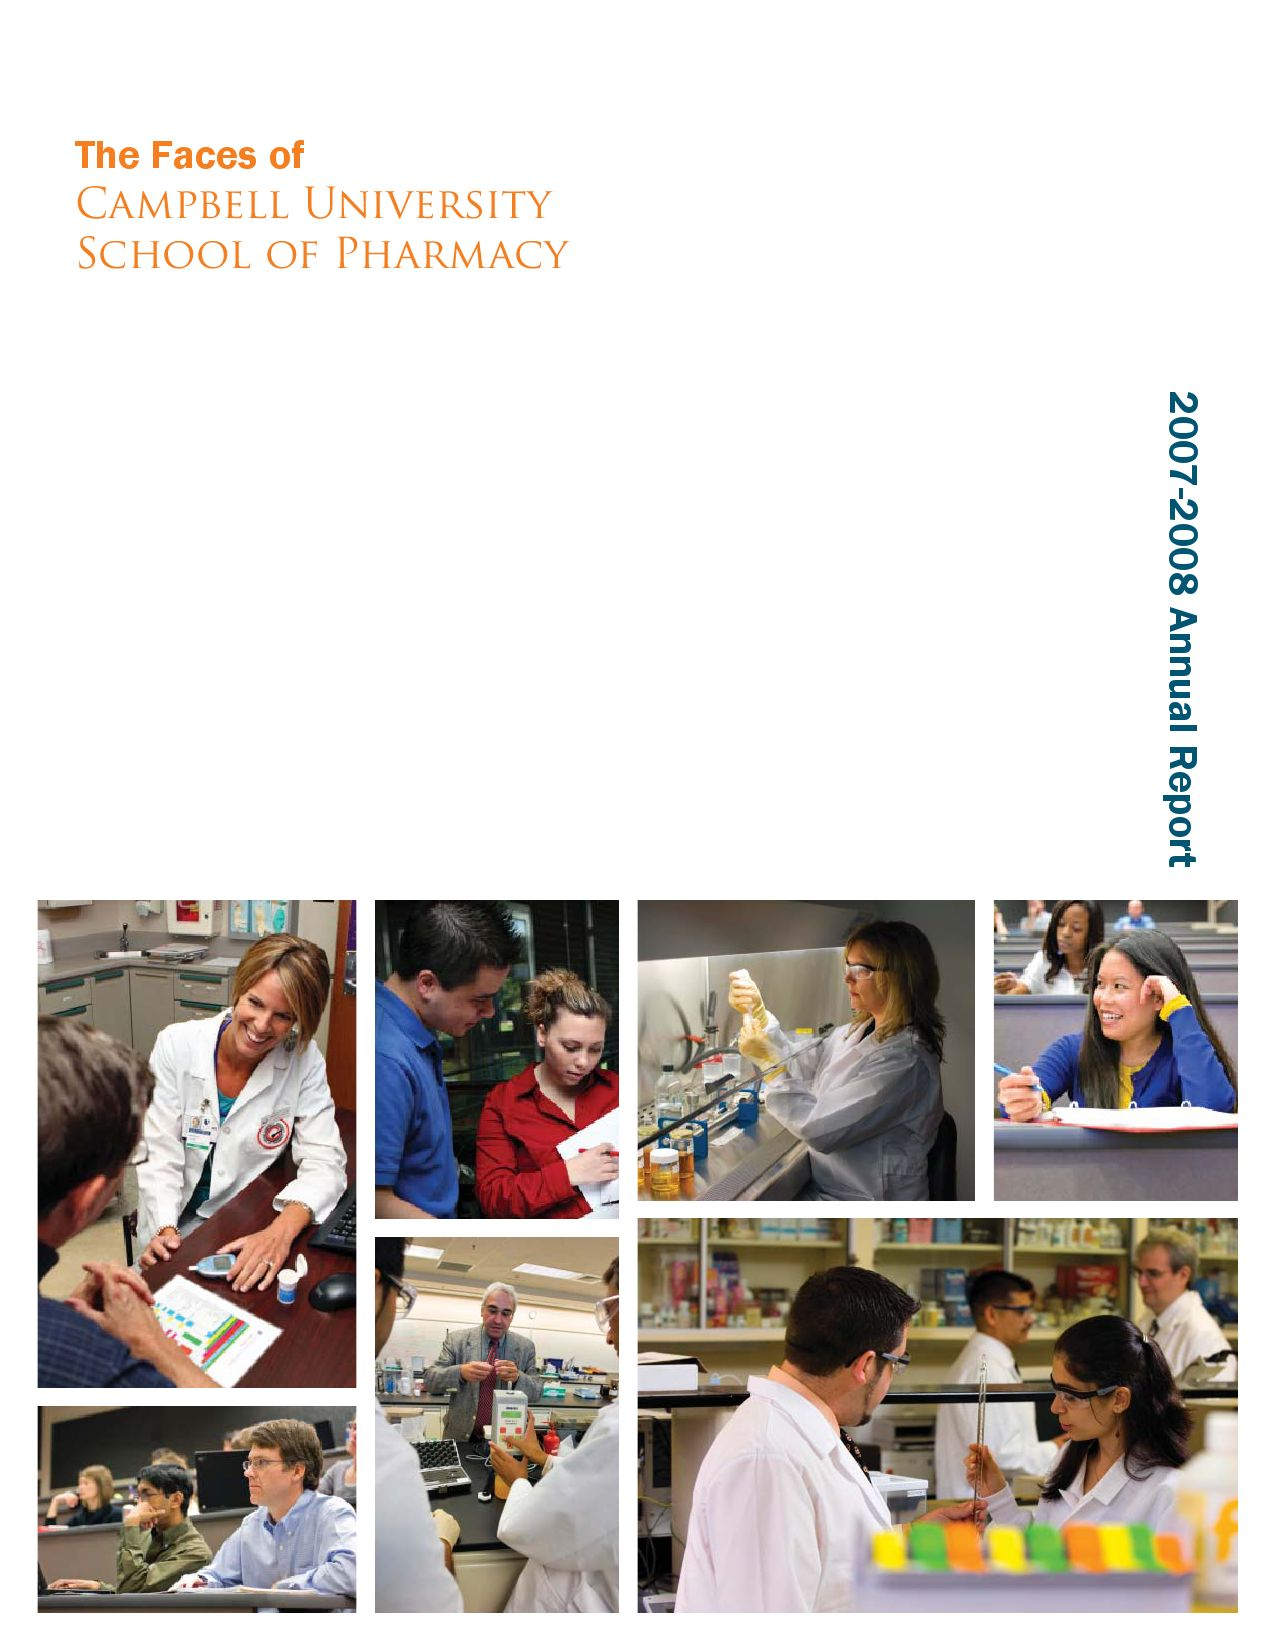 Can I do 2yrs in junior/accredited college then just 3yr in pharmacy school and graduate?